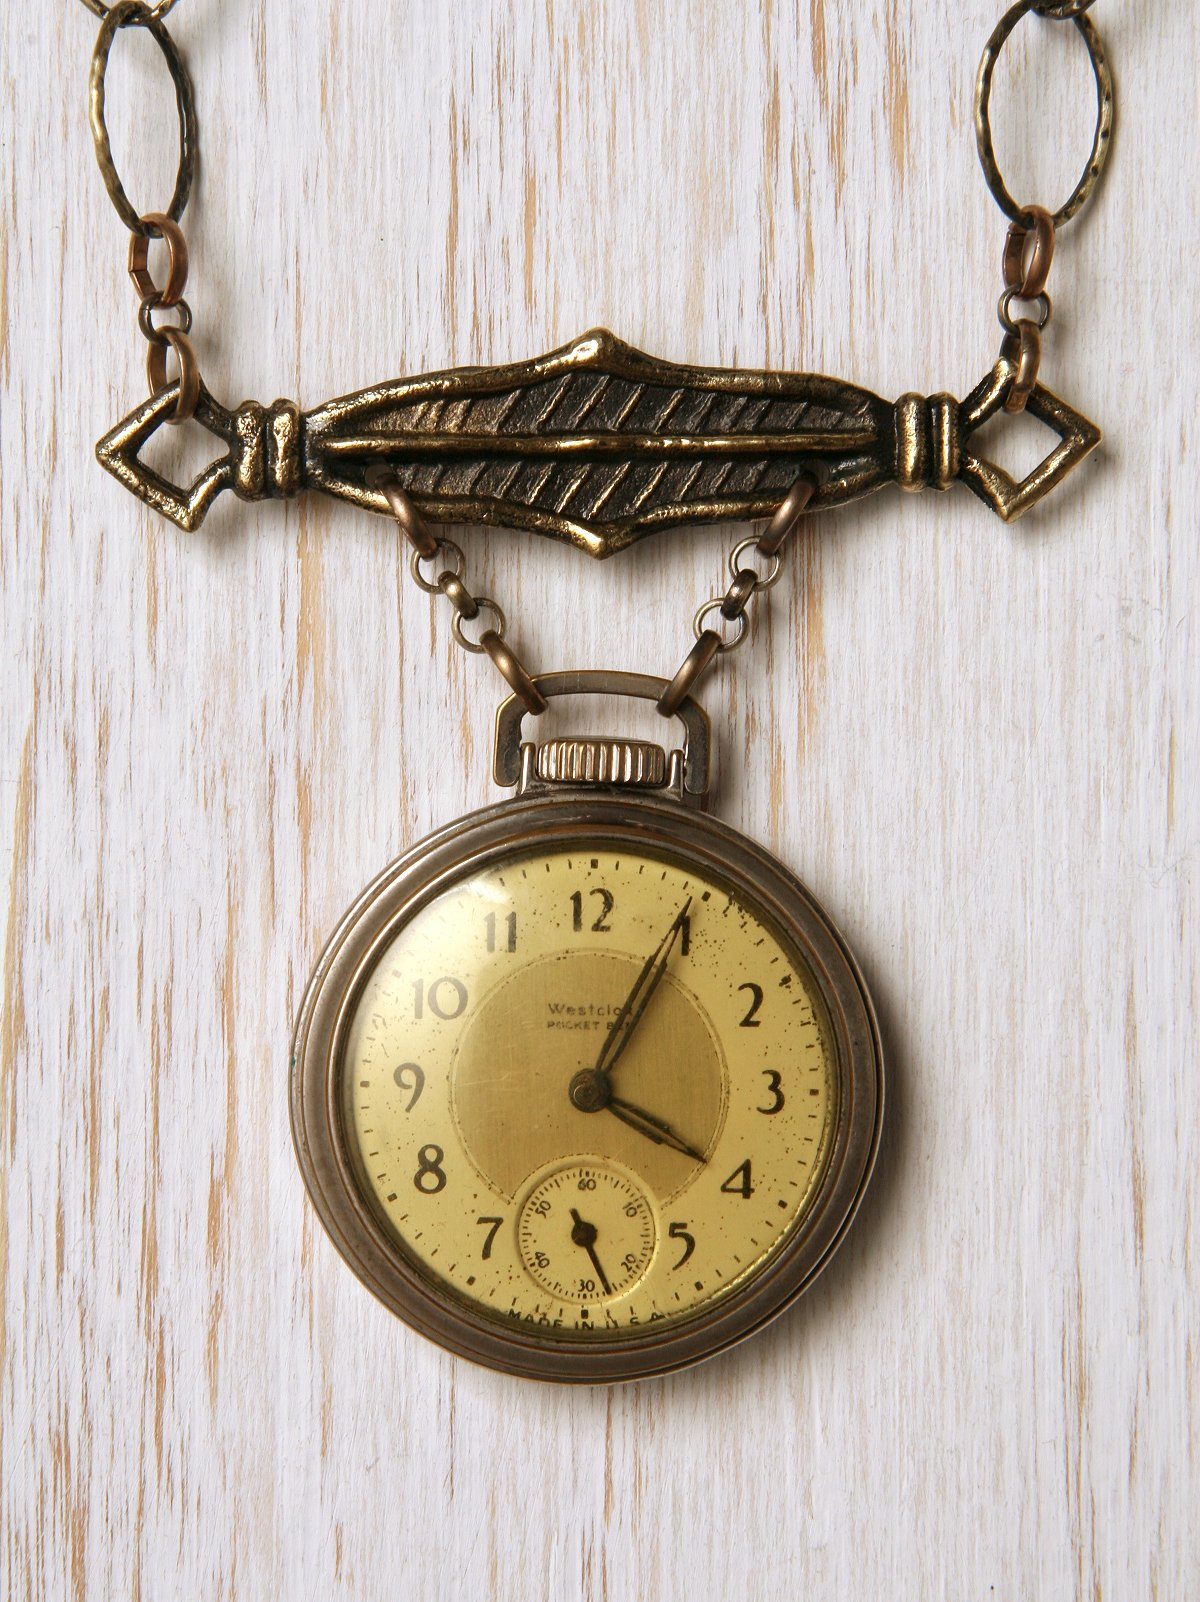 Vintage Pocket Watch One Of A Kind Necklace